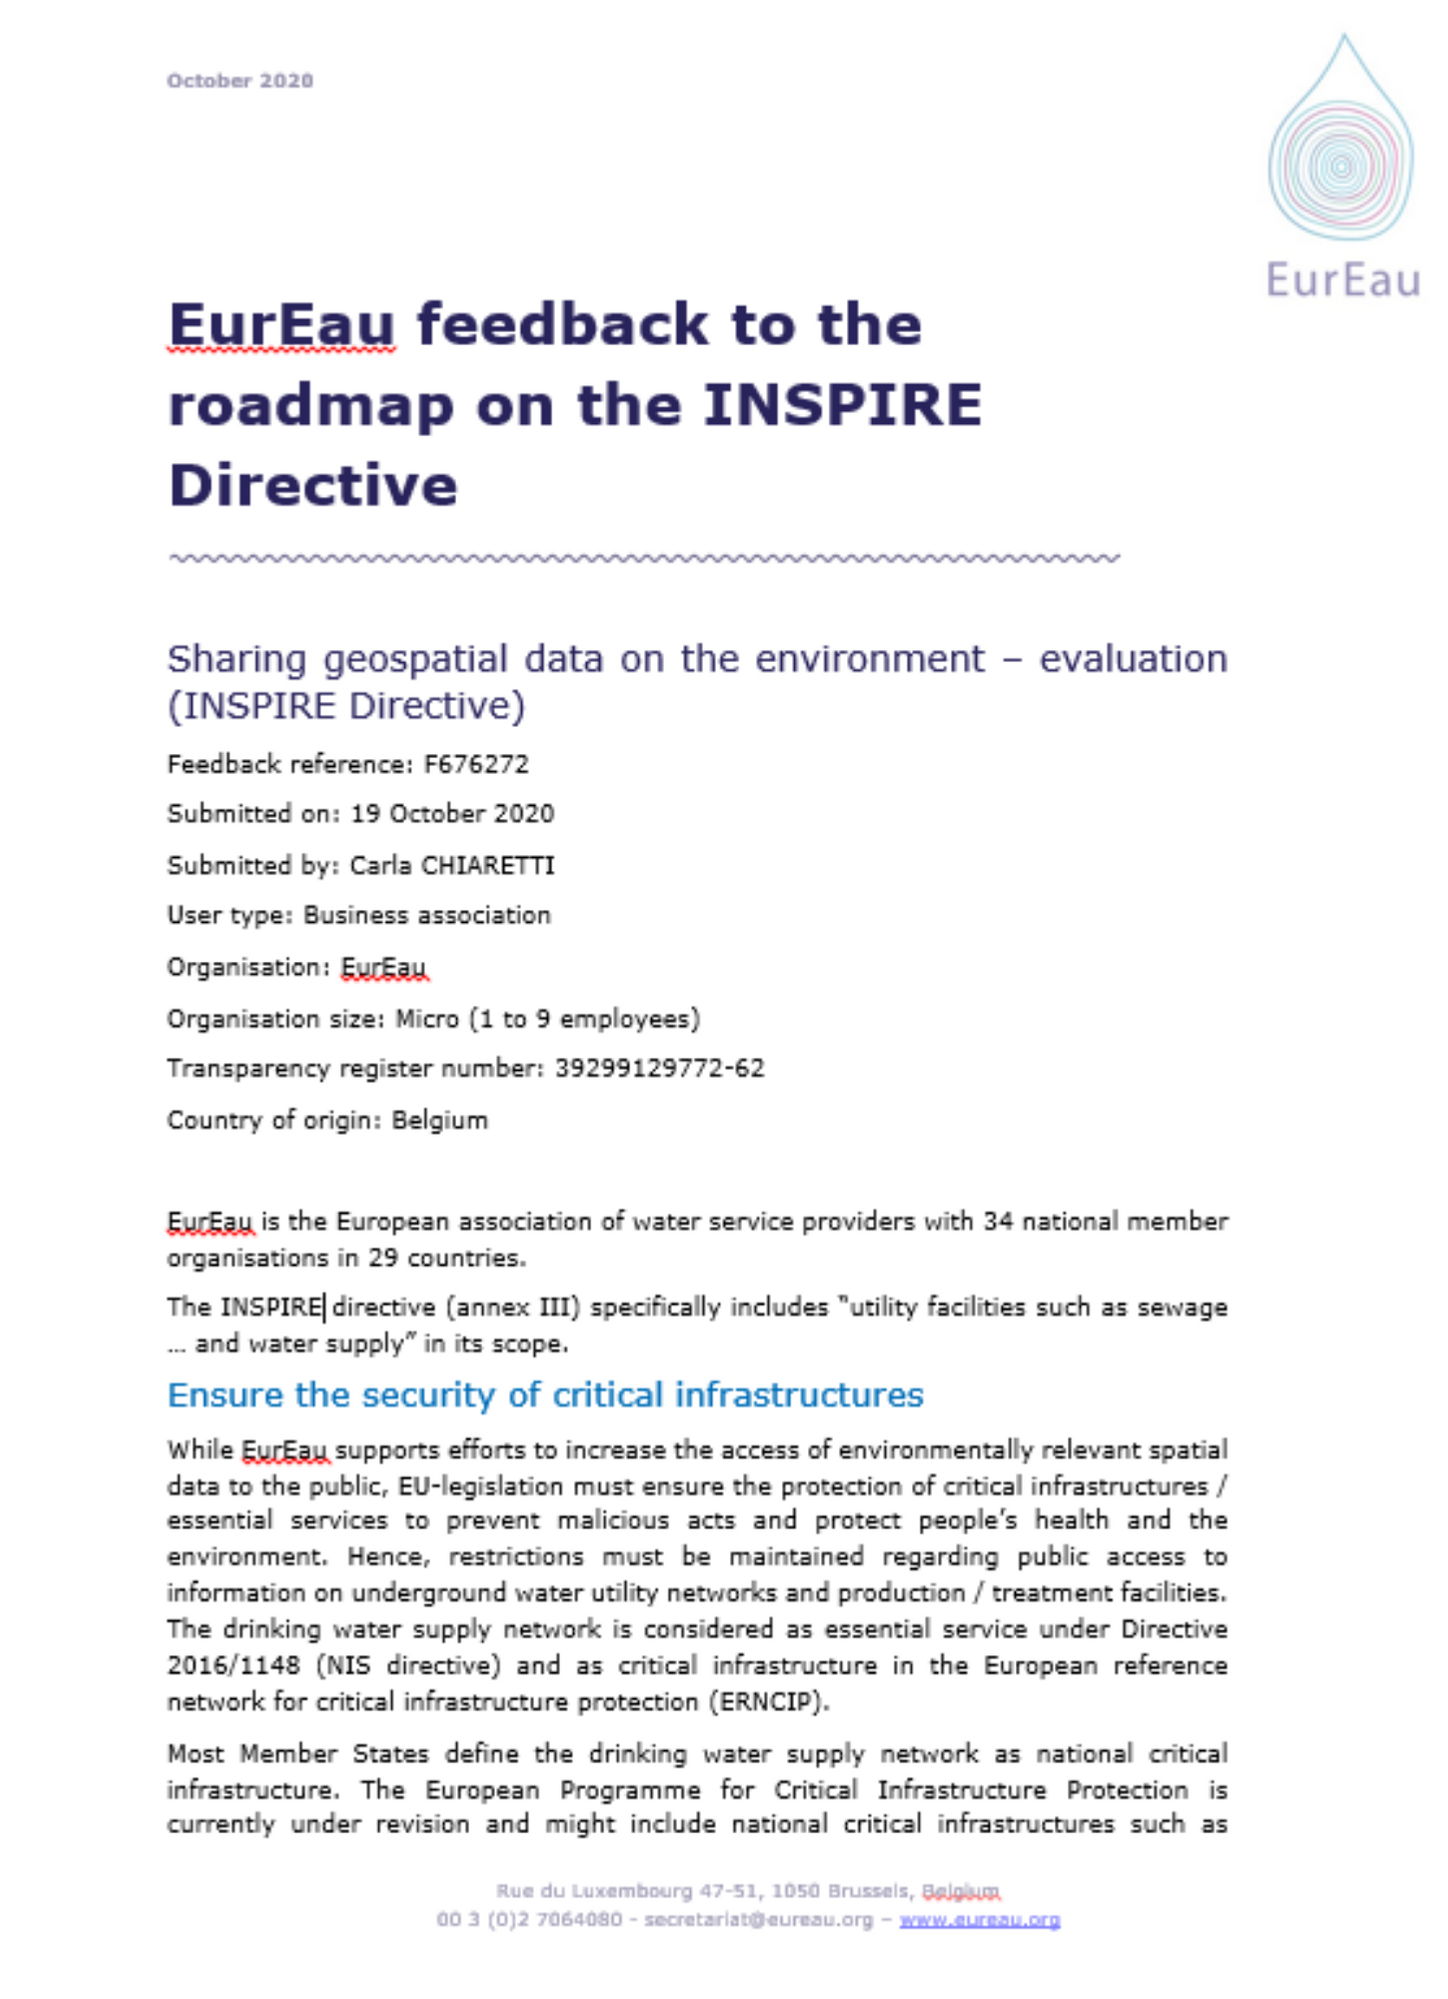 EurEau feedback to the roadmap on the INSPIRE Directive